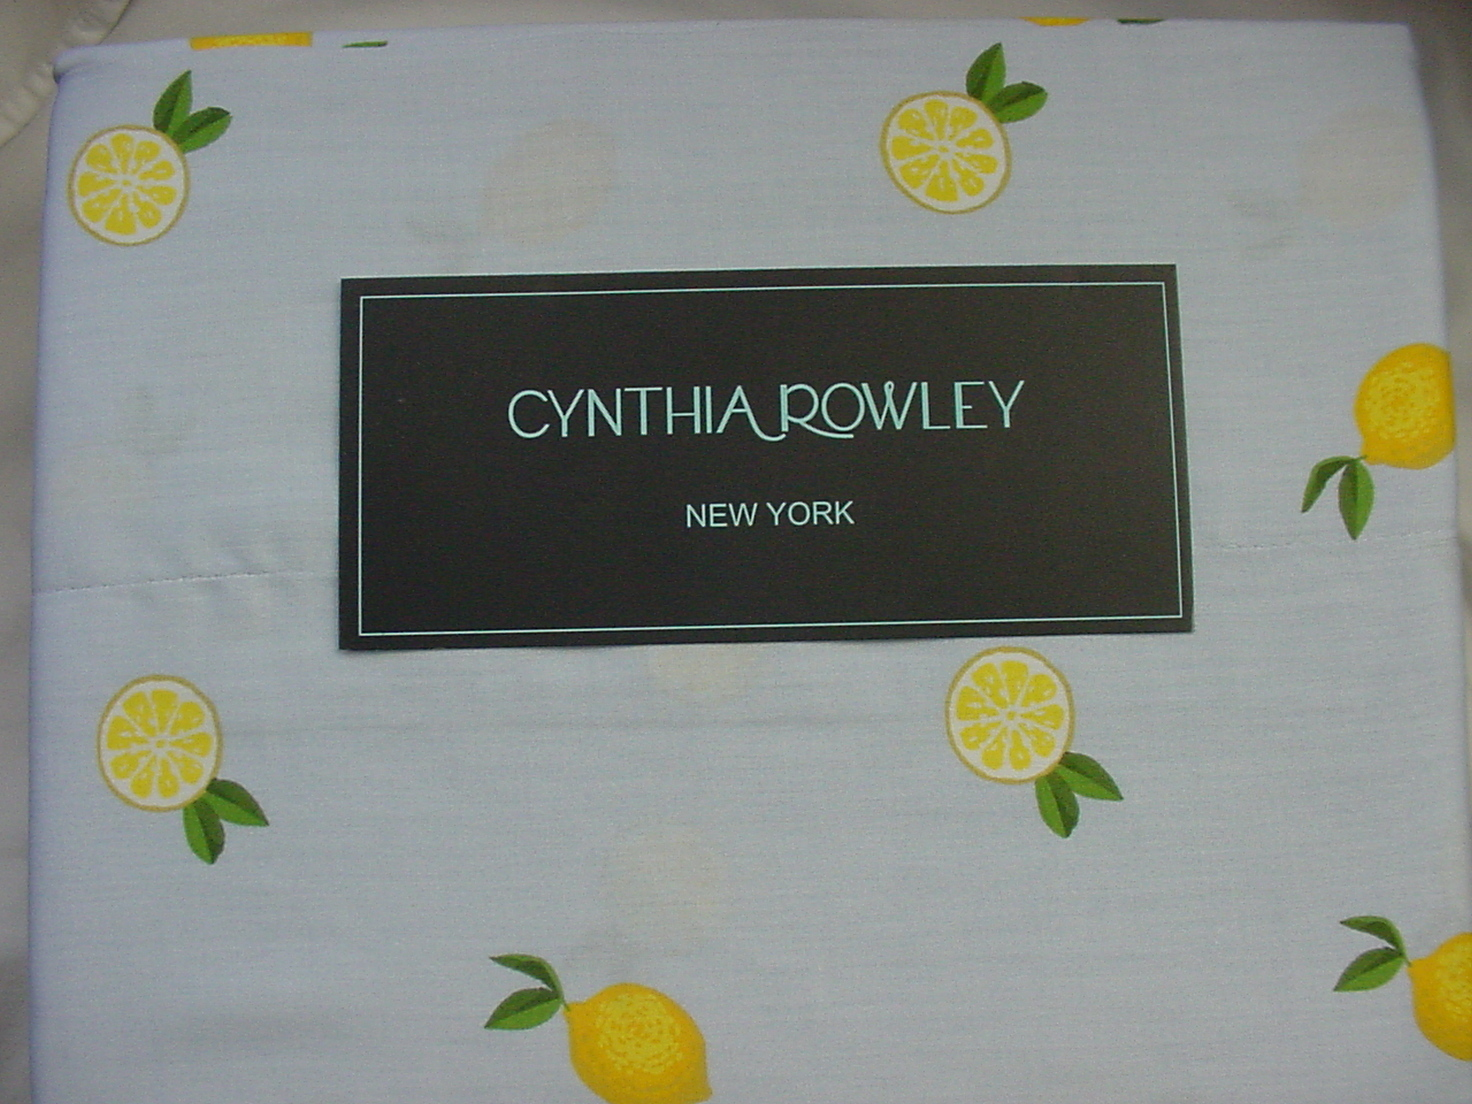 Cynthia Rowley 3 Piece Twin Size Bed Extra Deep Pockets Cotton Sheet Set Floral Pastel Pattern with Butterflies Cynthia Rowley New York